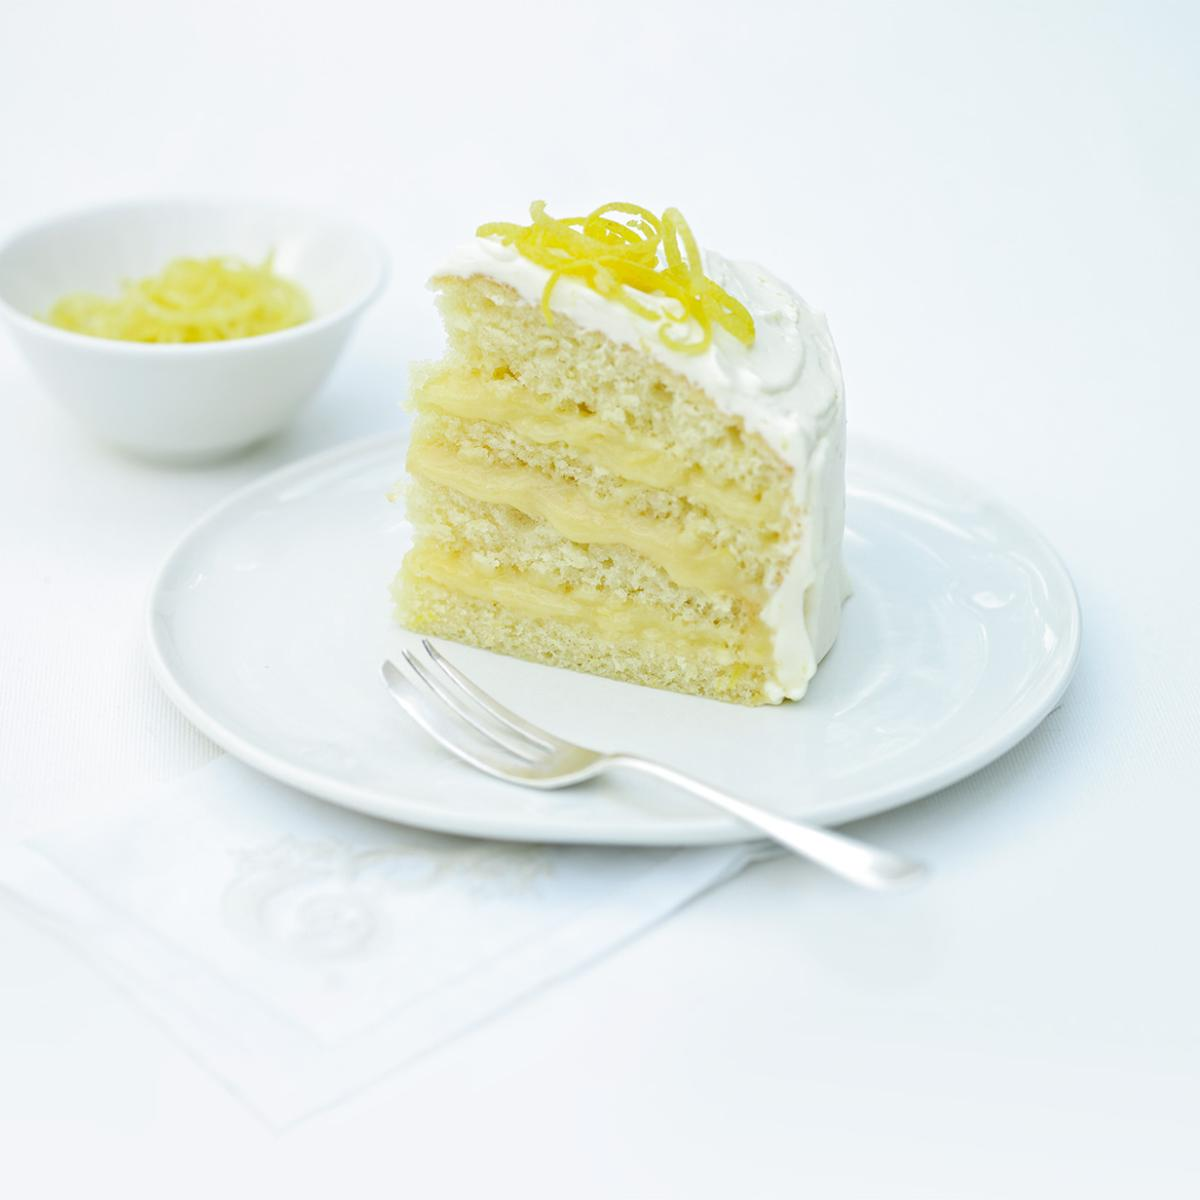 A picture of Delia's Iced Lemon Curd Layer Cake recipe